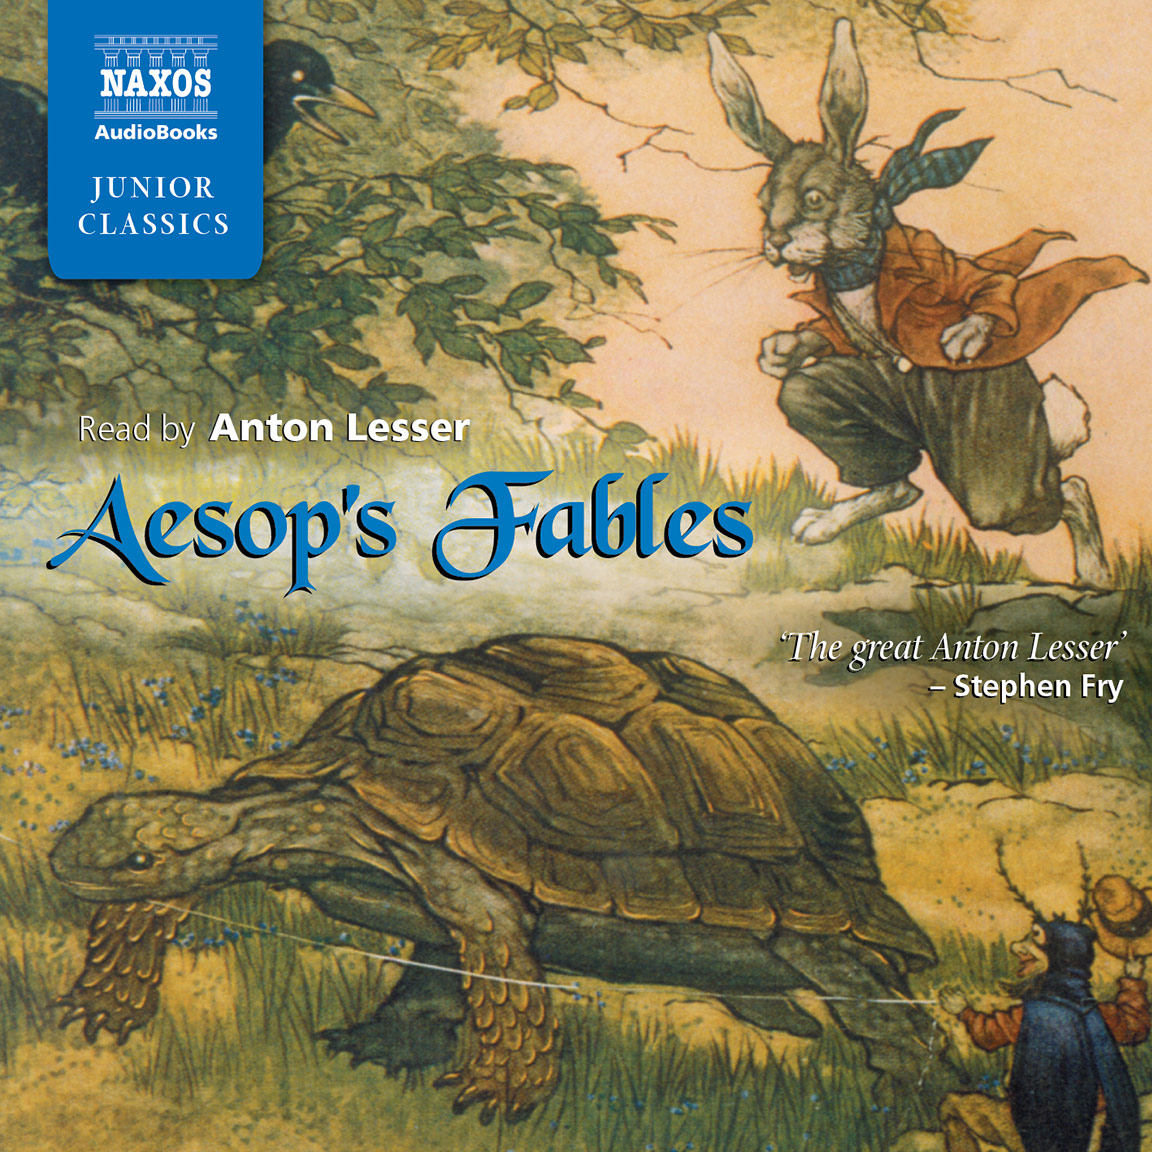 Aesop's Fables (selections)